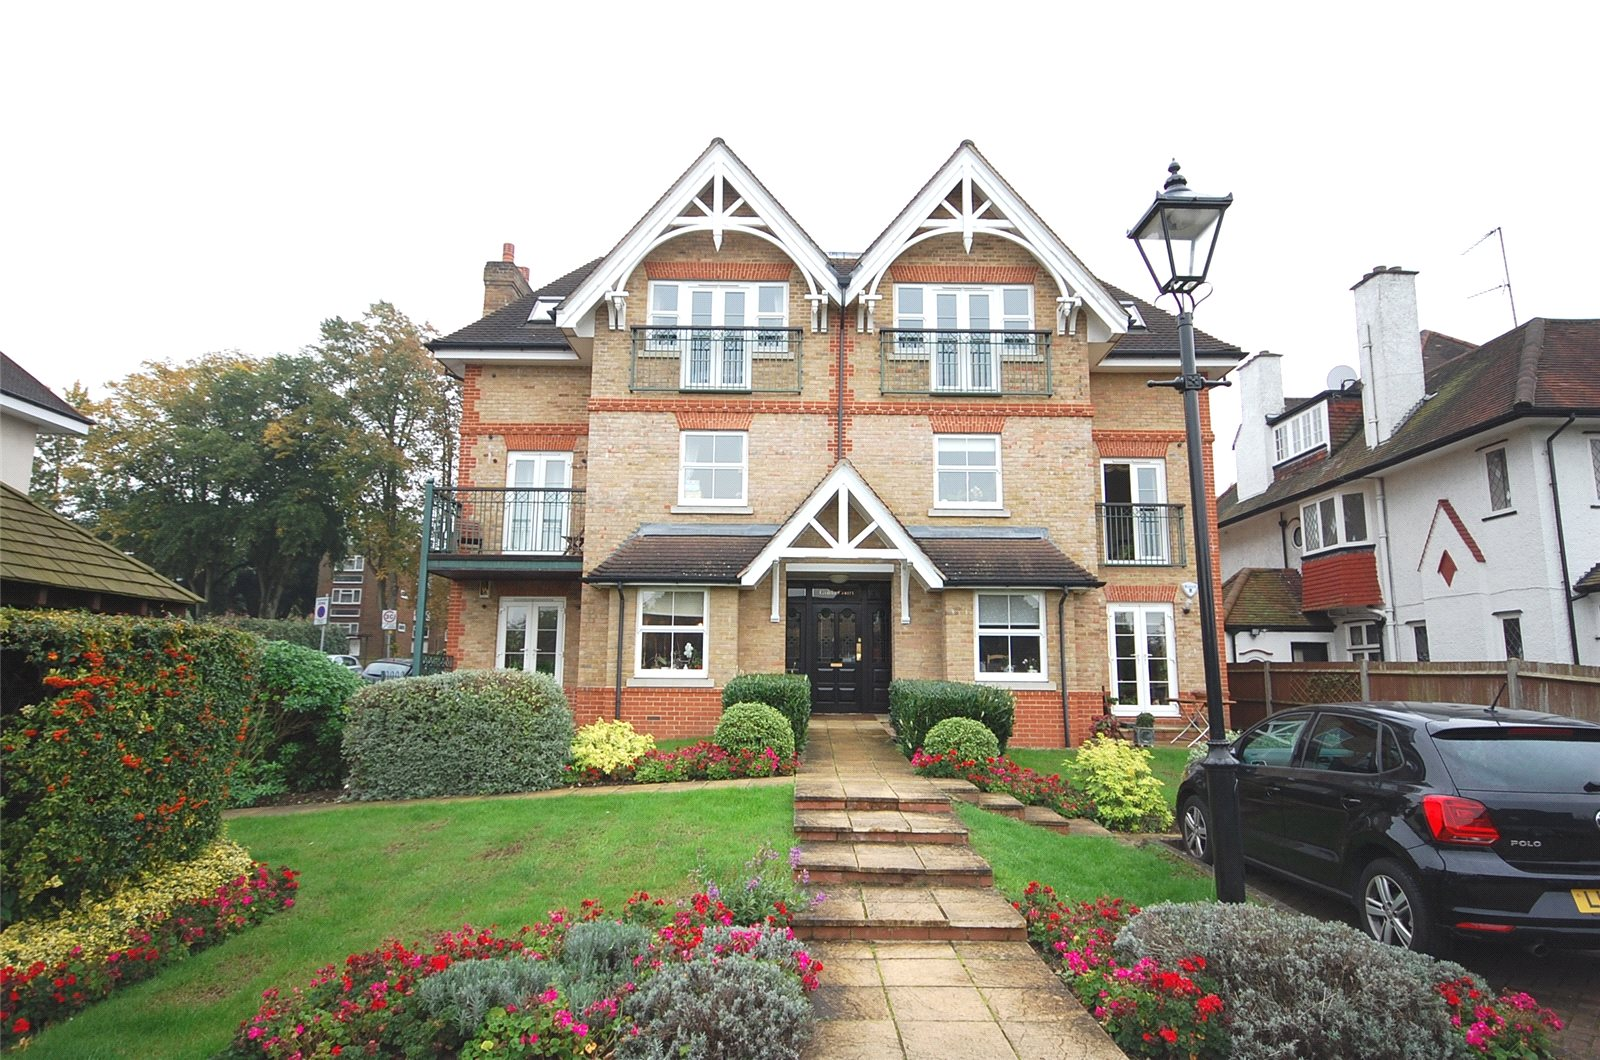 2 Bedrooms Flat for sale in Golda Court St. Marys Avenue Finchley N3